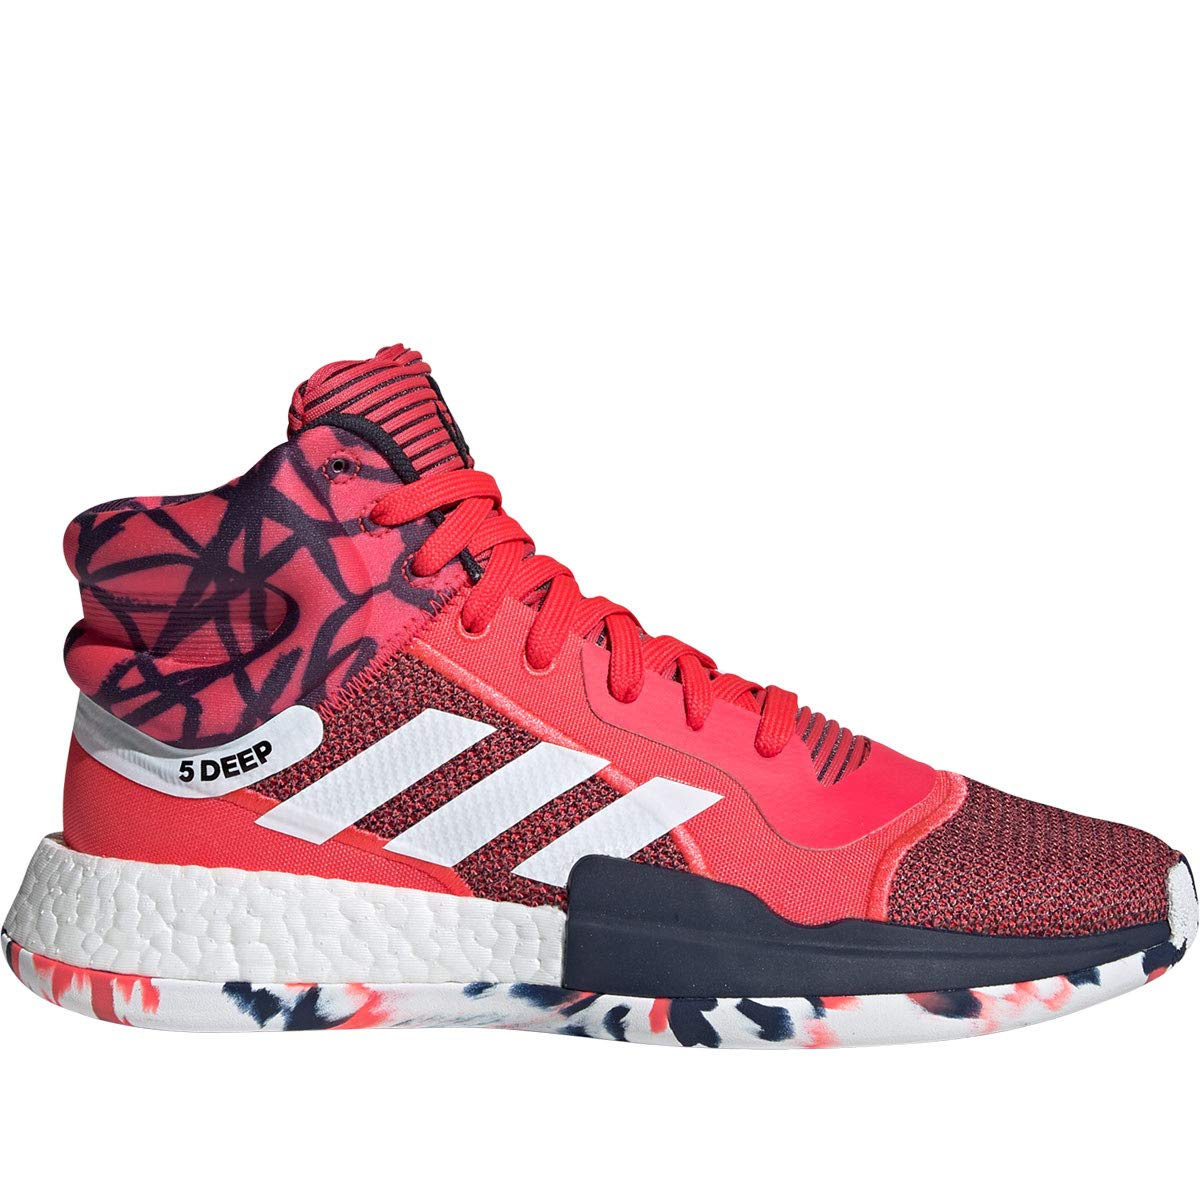 Adidas Marquee Boost Wall PE 48 2 3-UK 3-UK 3-UK 13 4a5f59